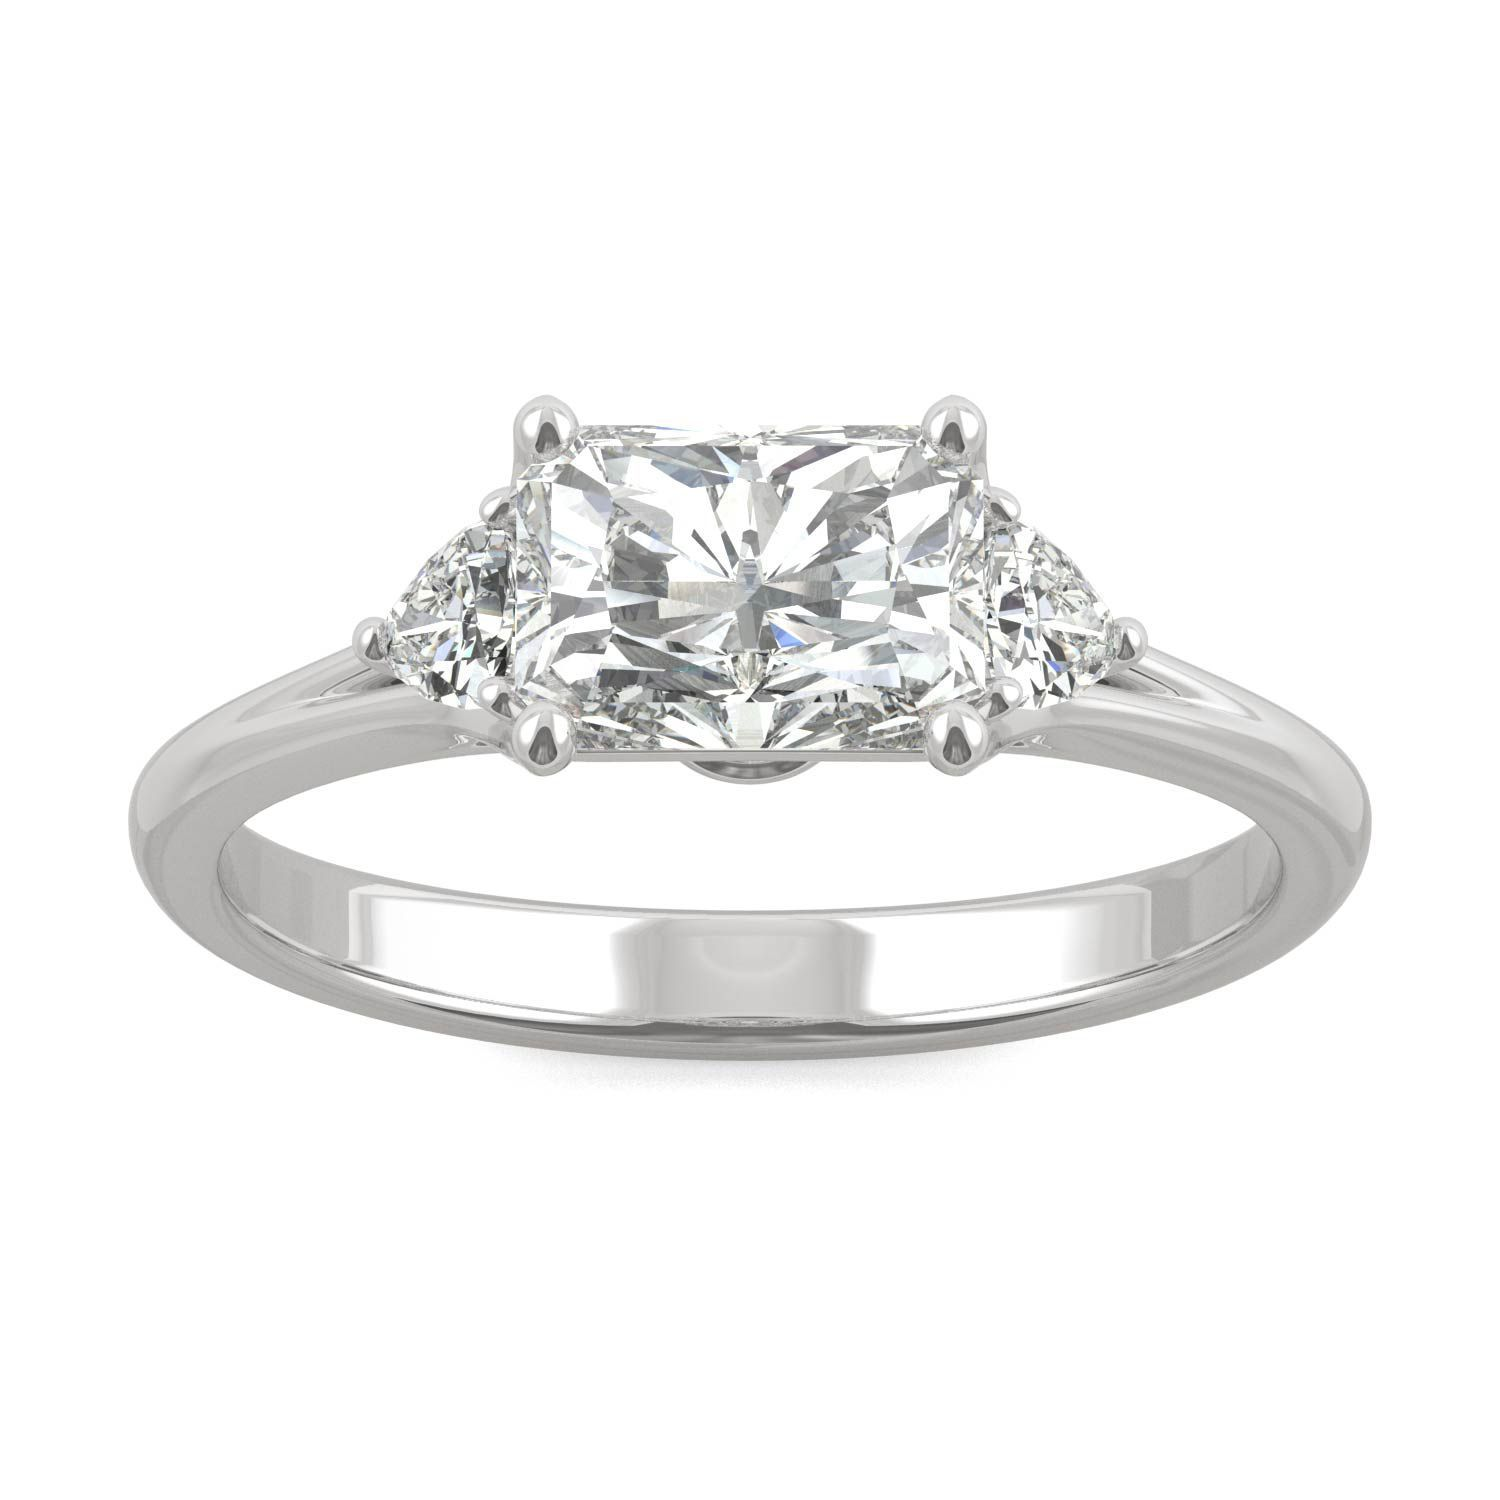 Charles & Colvard Signature East-West Radiant Three Stone Engagement Ring in White Gold